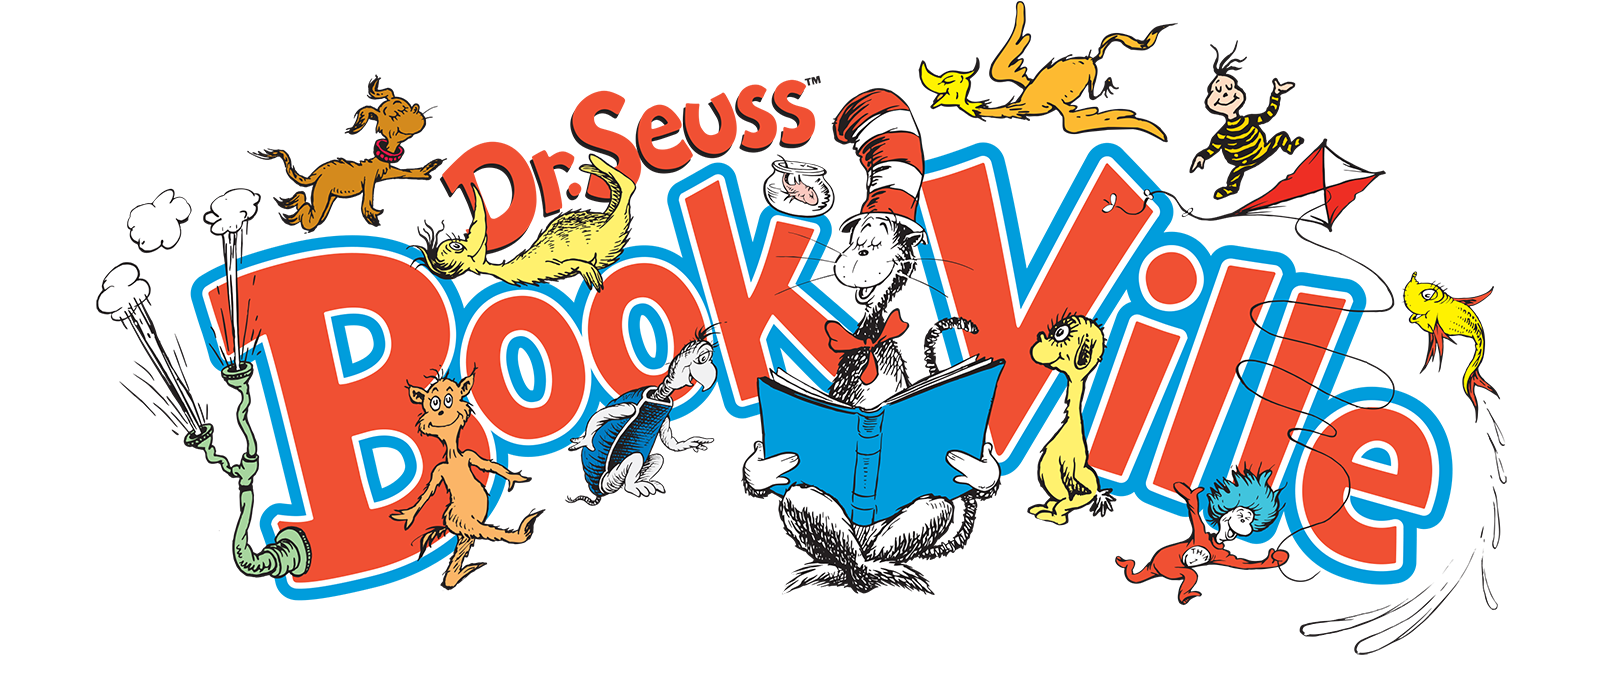 Pages-from-DS_Bookville_Logos_DOT_120613.png